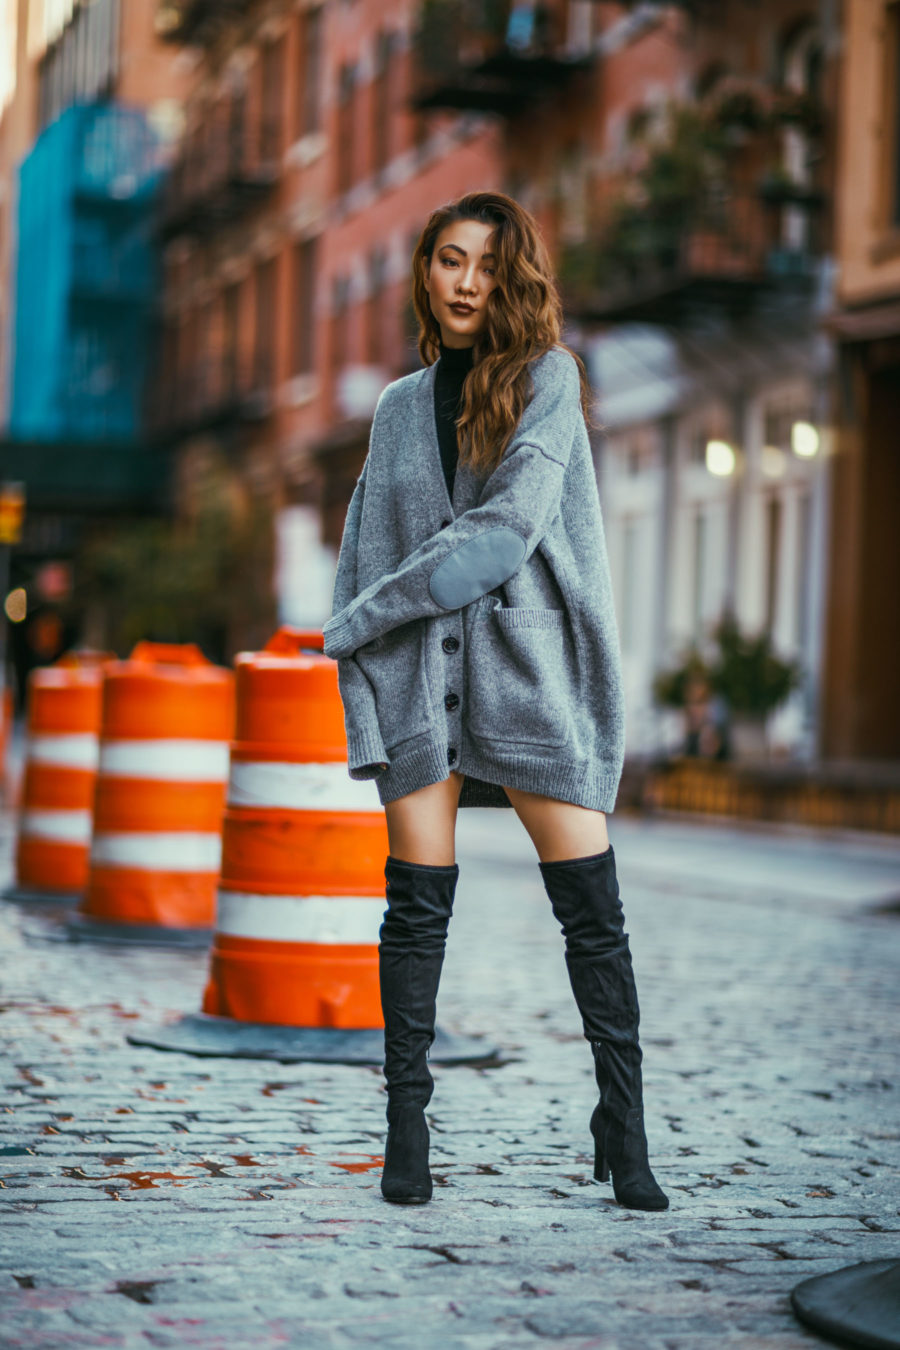 THIGHHIGH BOOTS - Tips for Styling Thigh High Boots - DSW thigh high boots// Notjessfashion.com